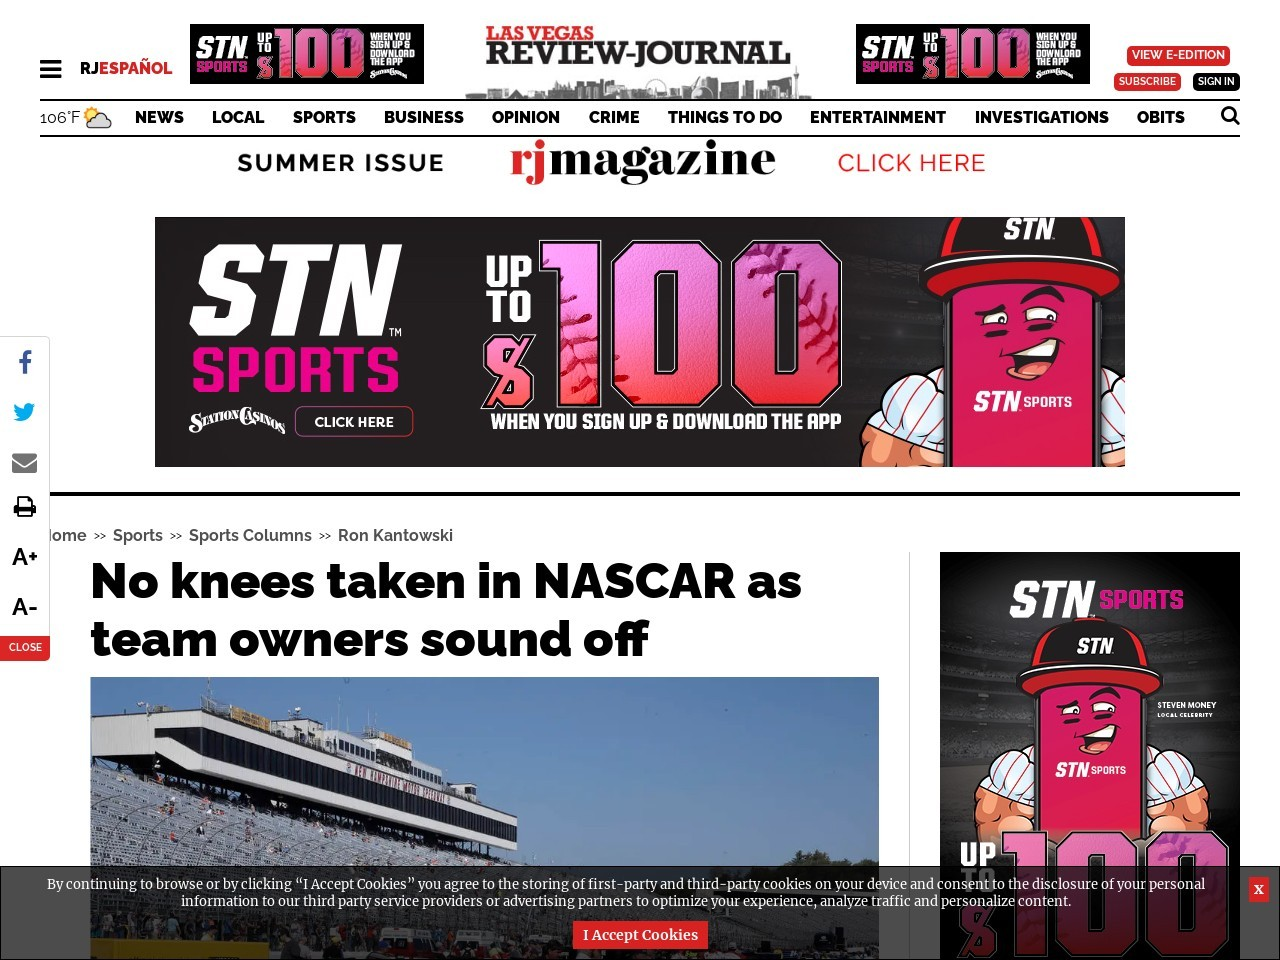 No knees taken in NASCAR as team owners sound off